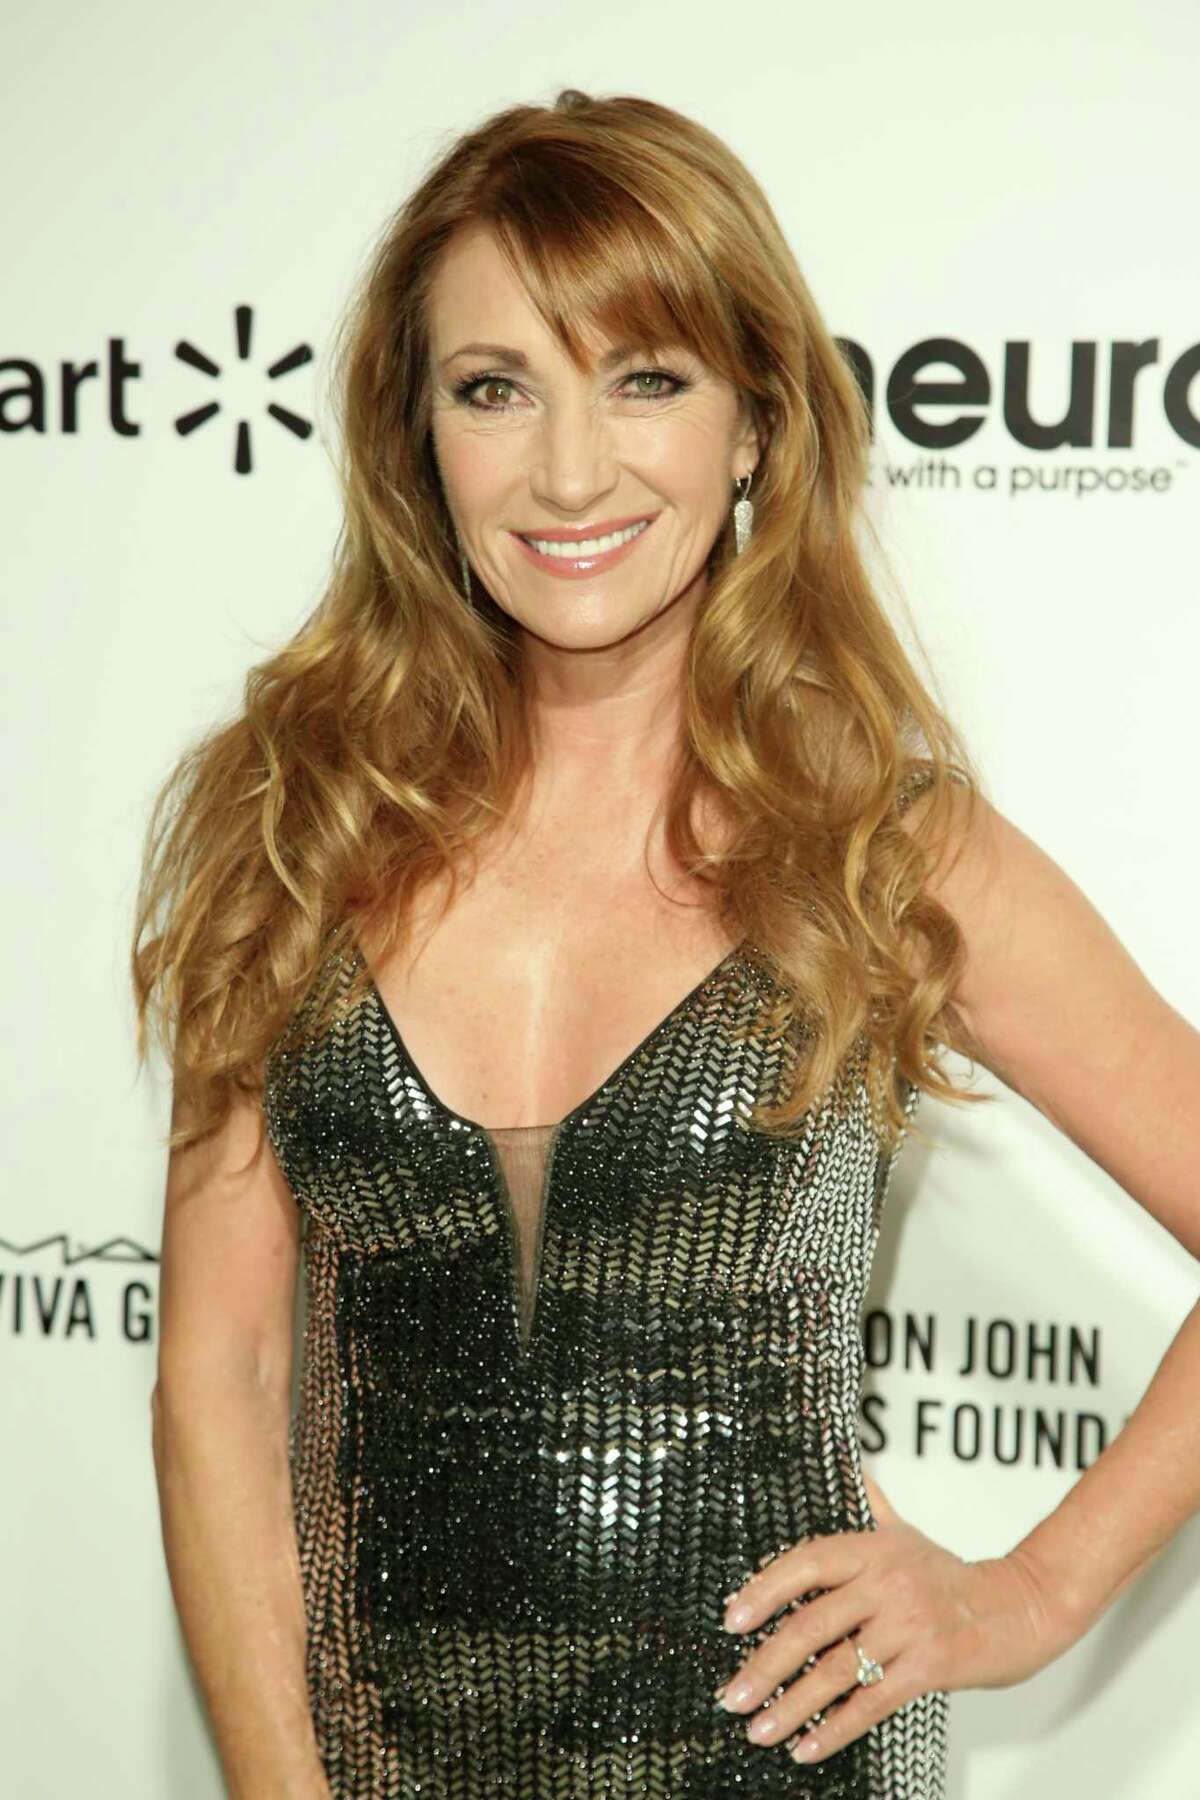 Jane Seymour arrives at the 2020 Elton John AIDS Foundation Oscar Viewing Party on Sunday, Feb. 9, 2020, in West Hollywood, Calif. (Photo by Willy Sanjuan/Invision/AP)